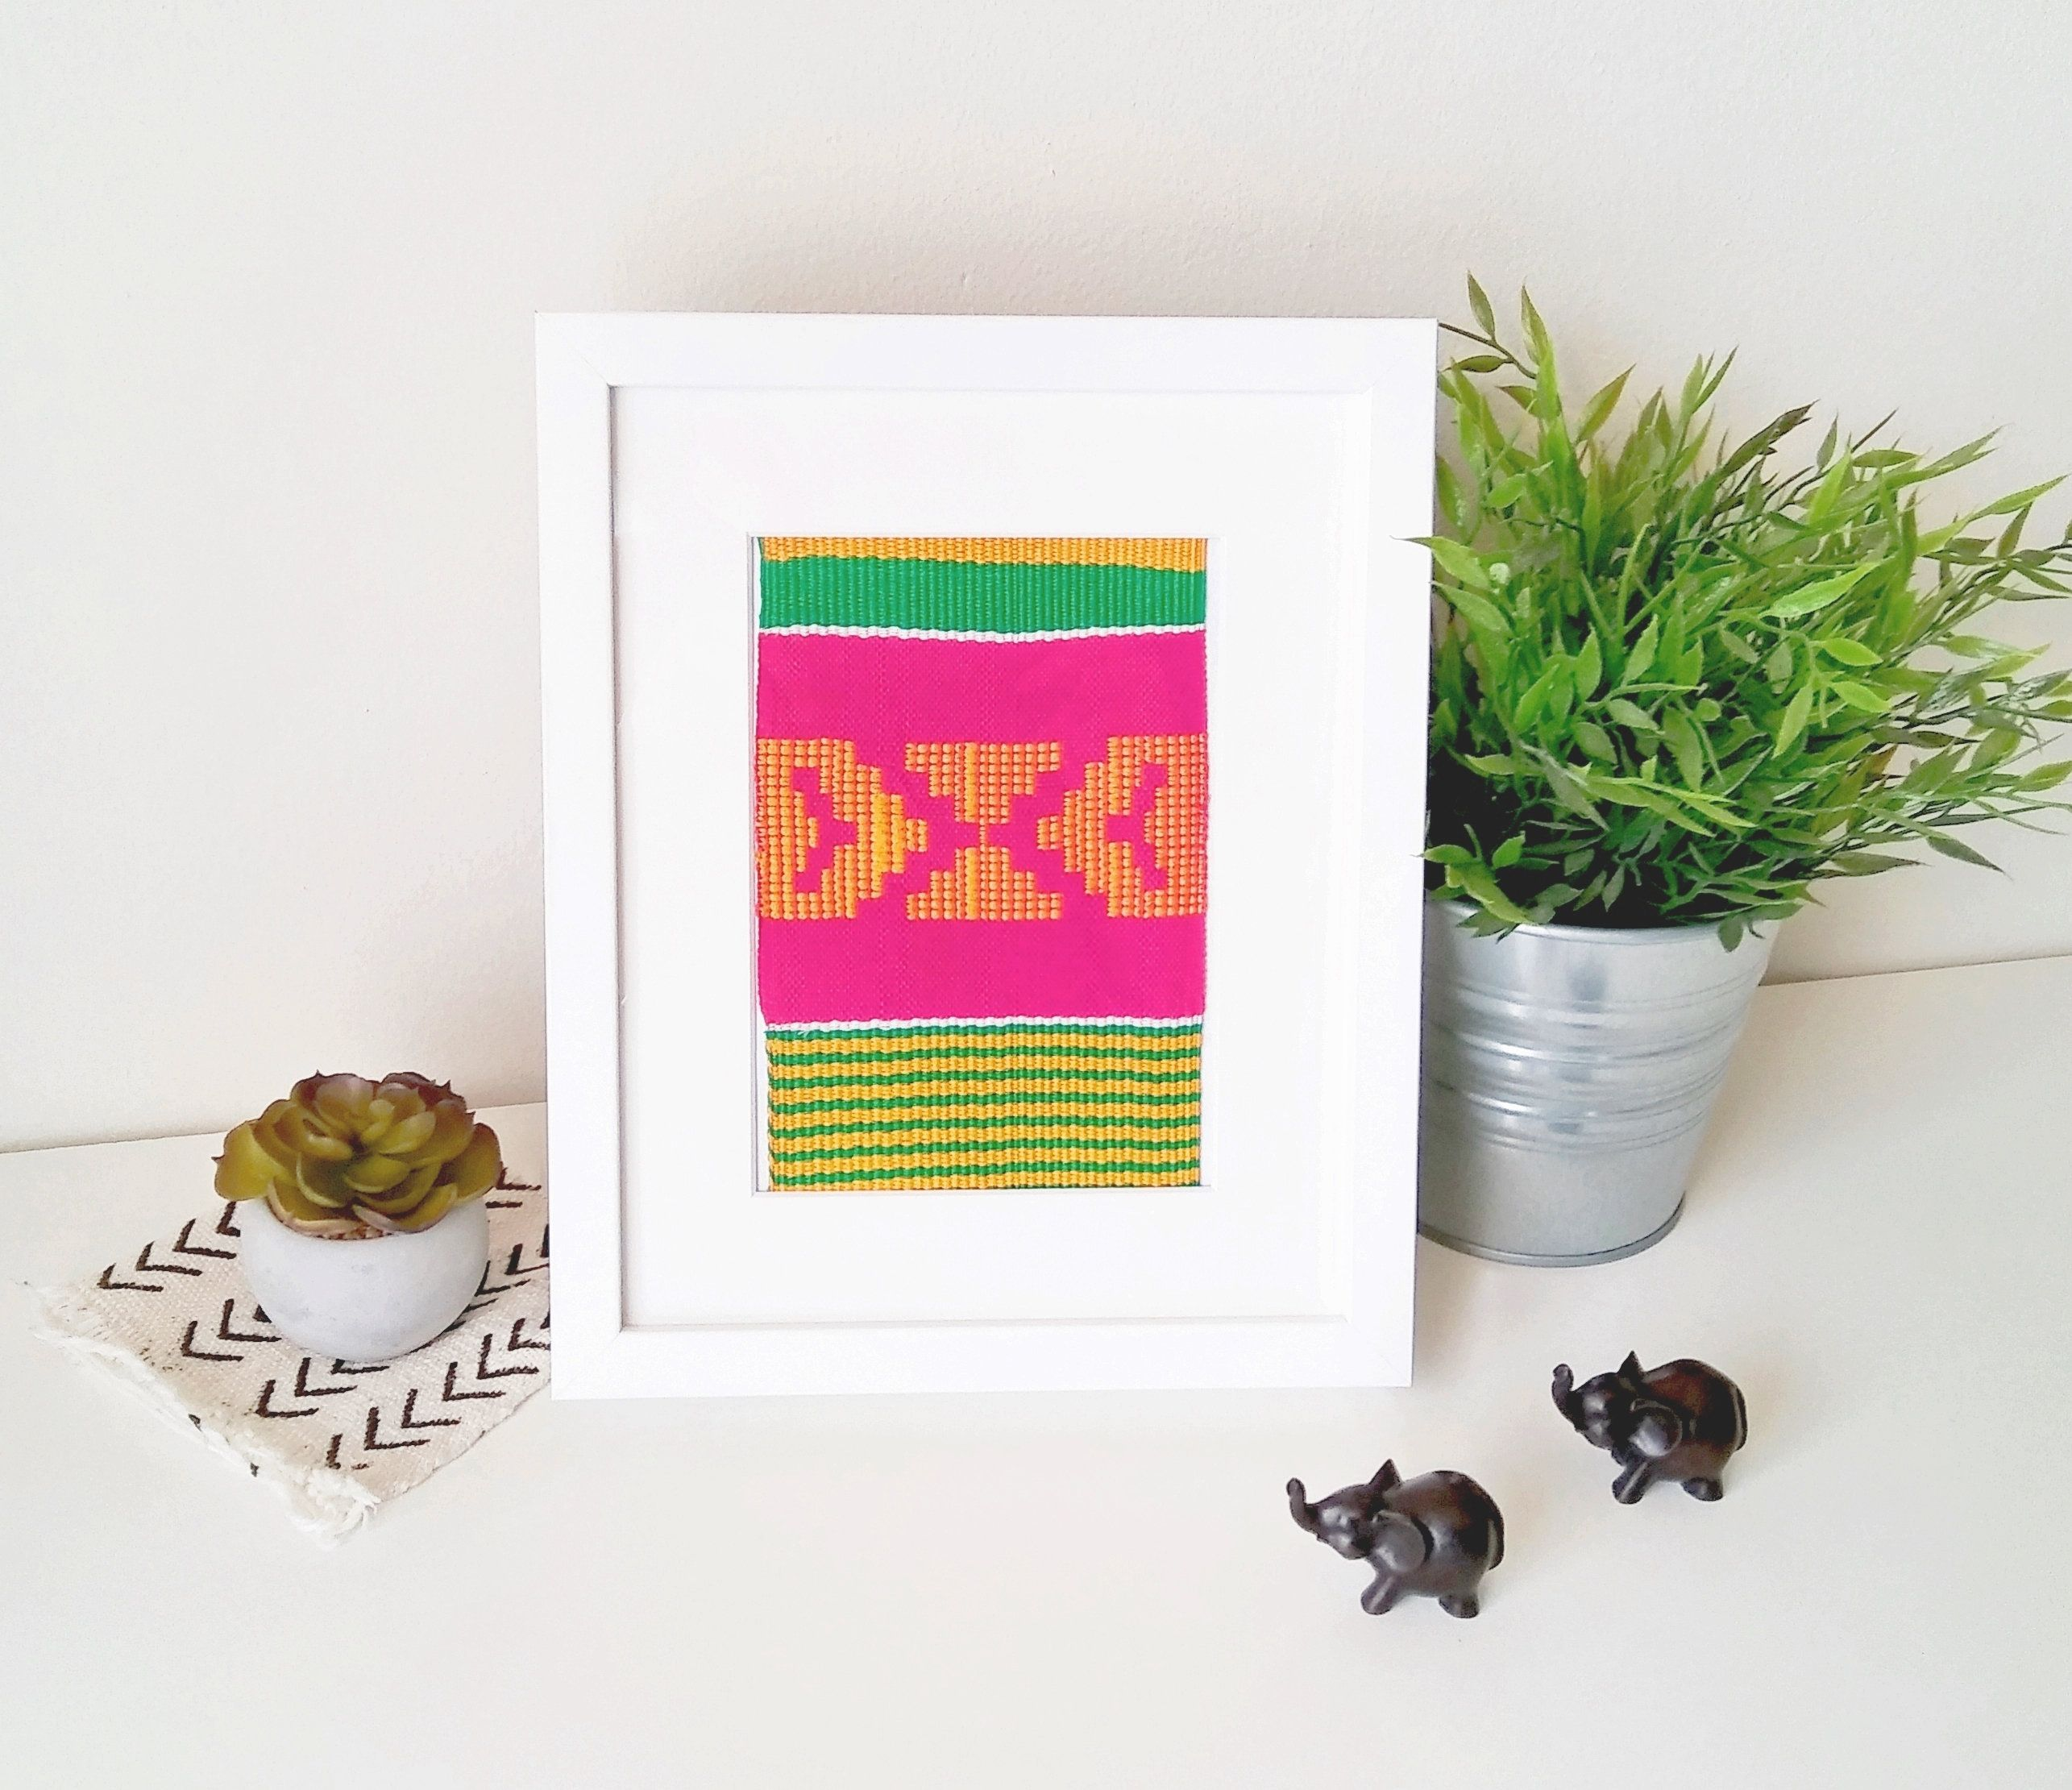 Pink and Green Kente Stole, Handwoven in Ghana, Framed textile ...